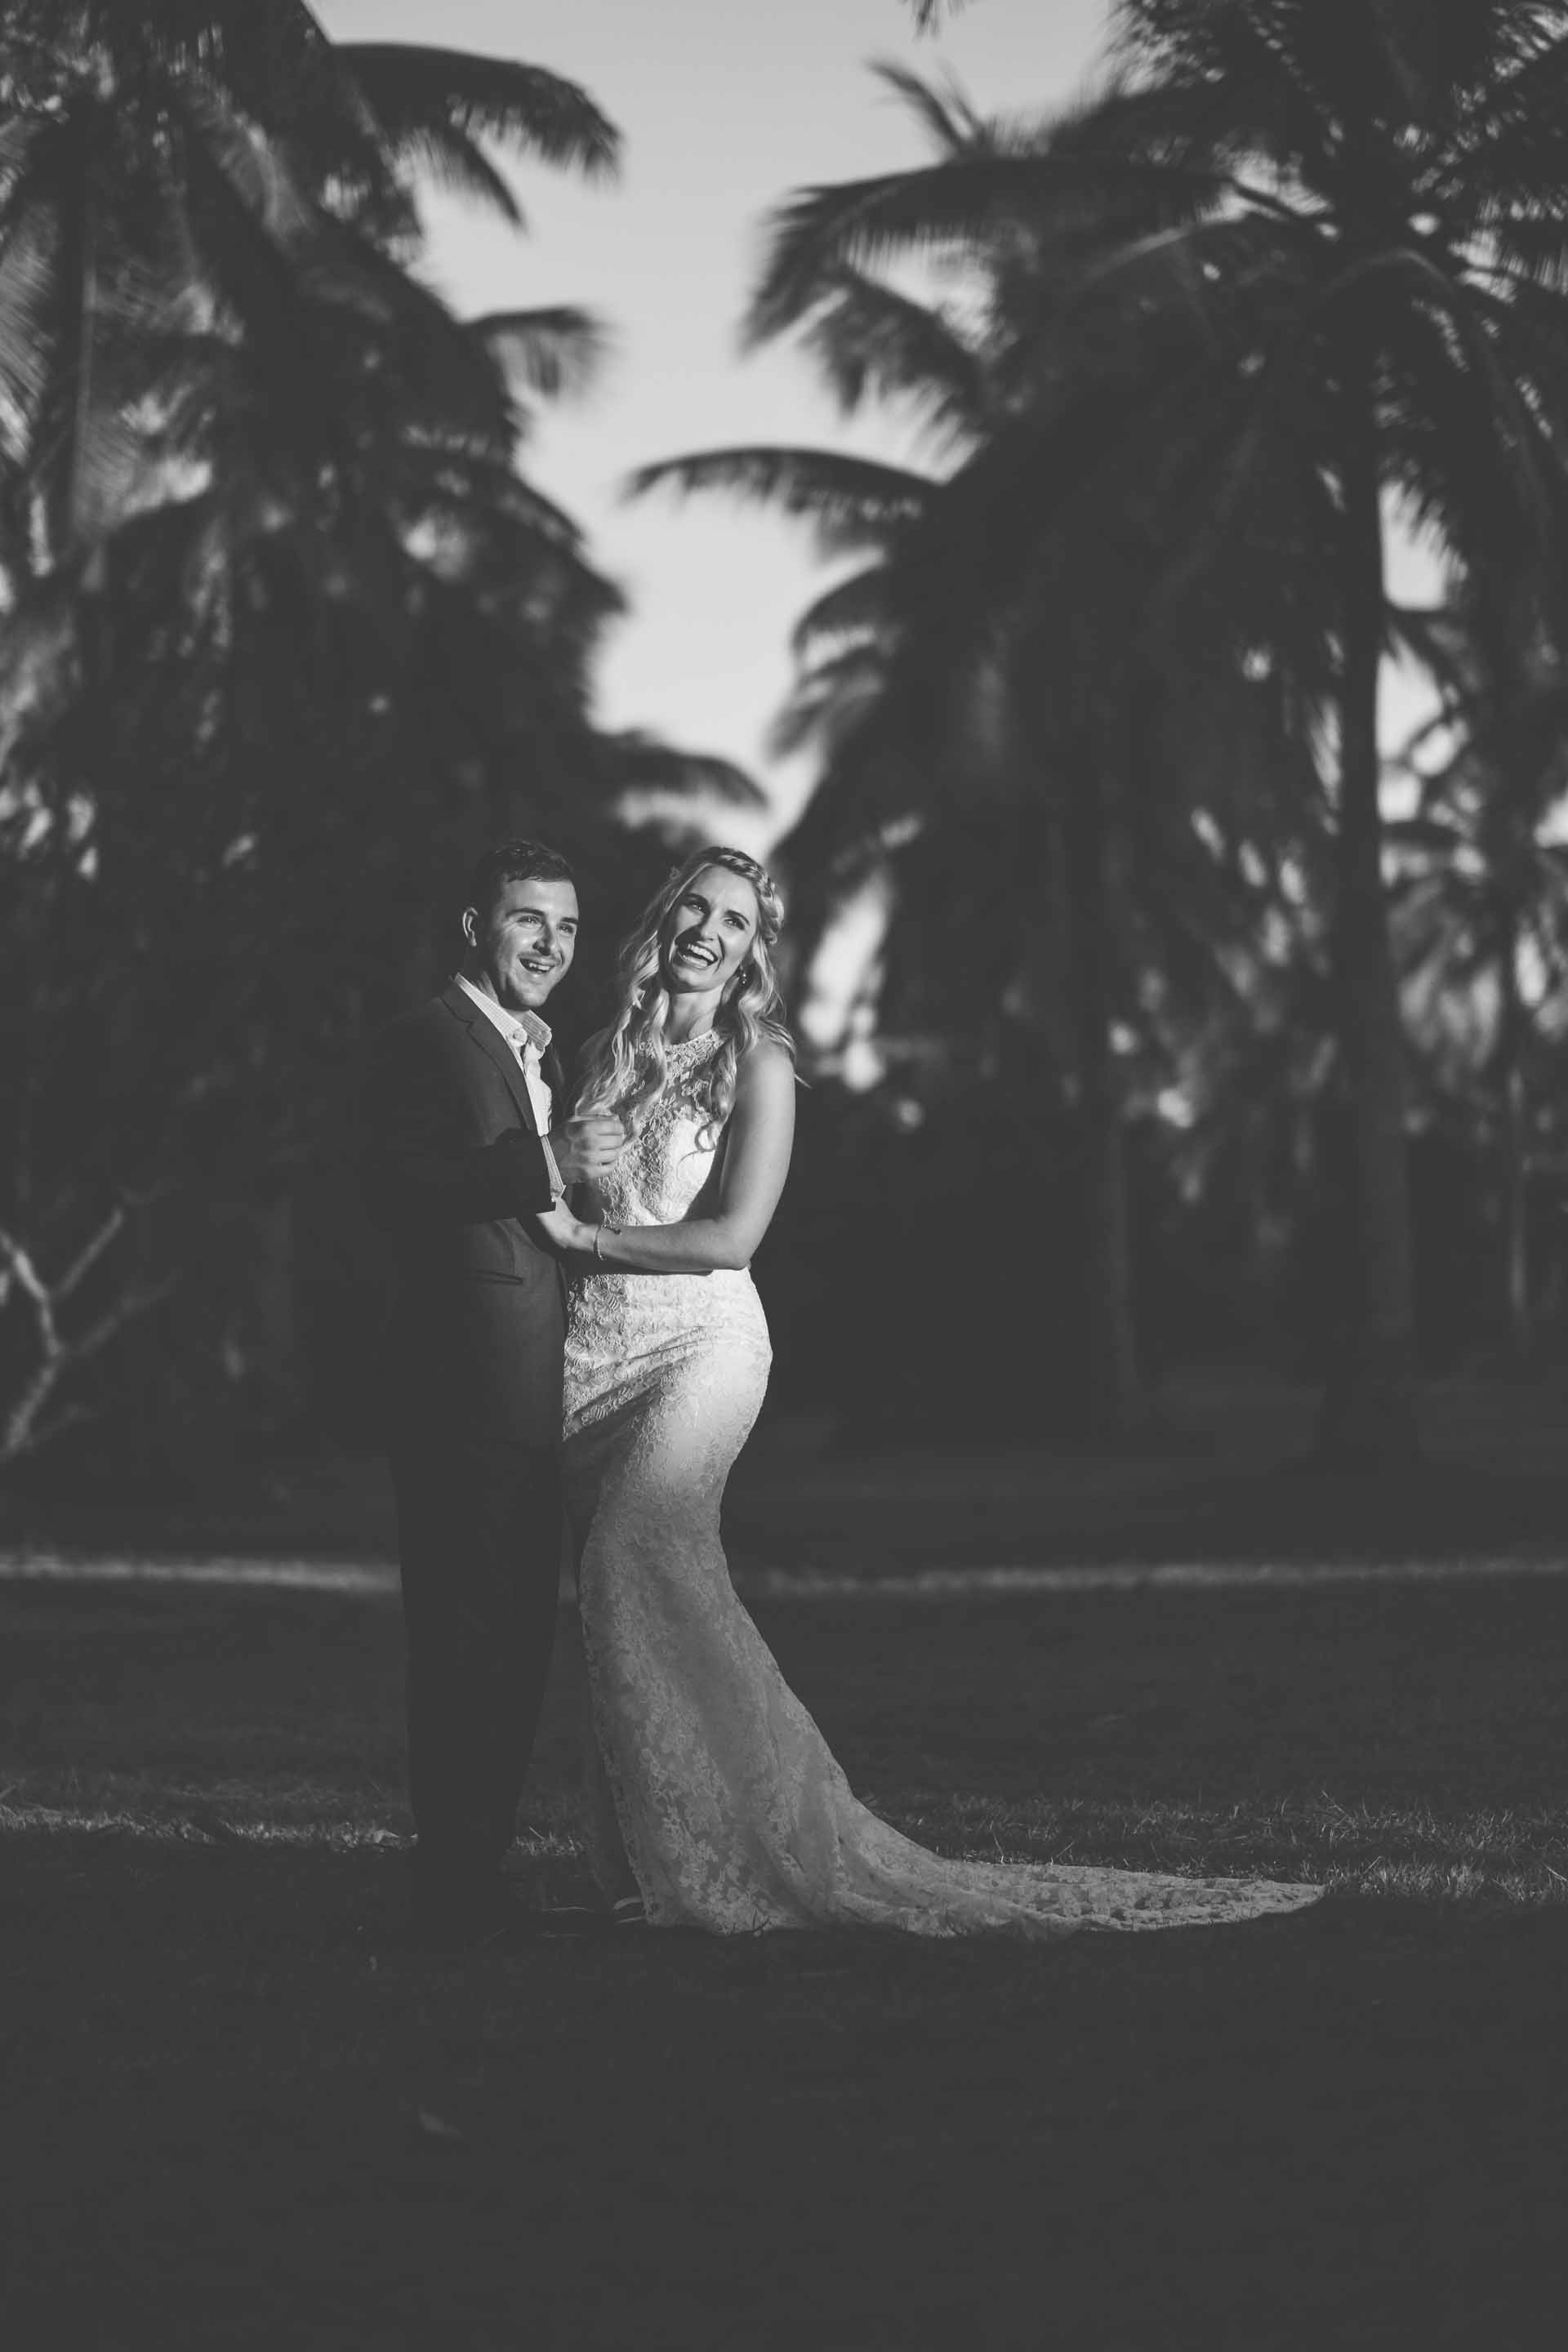 full length portrait of the bride and groom between rows of coconut trees in black and white